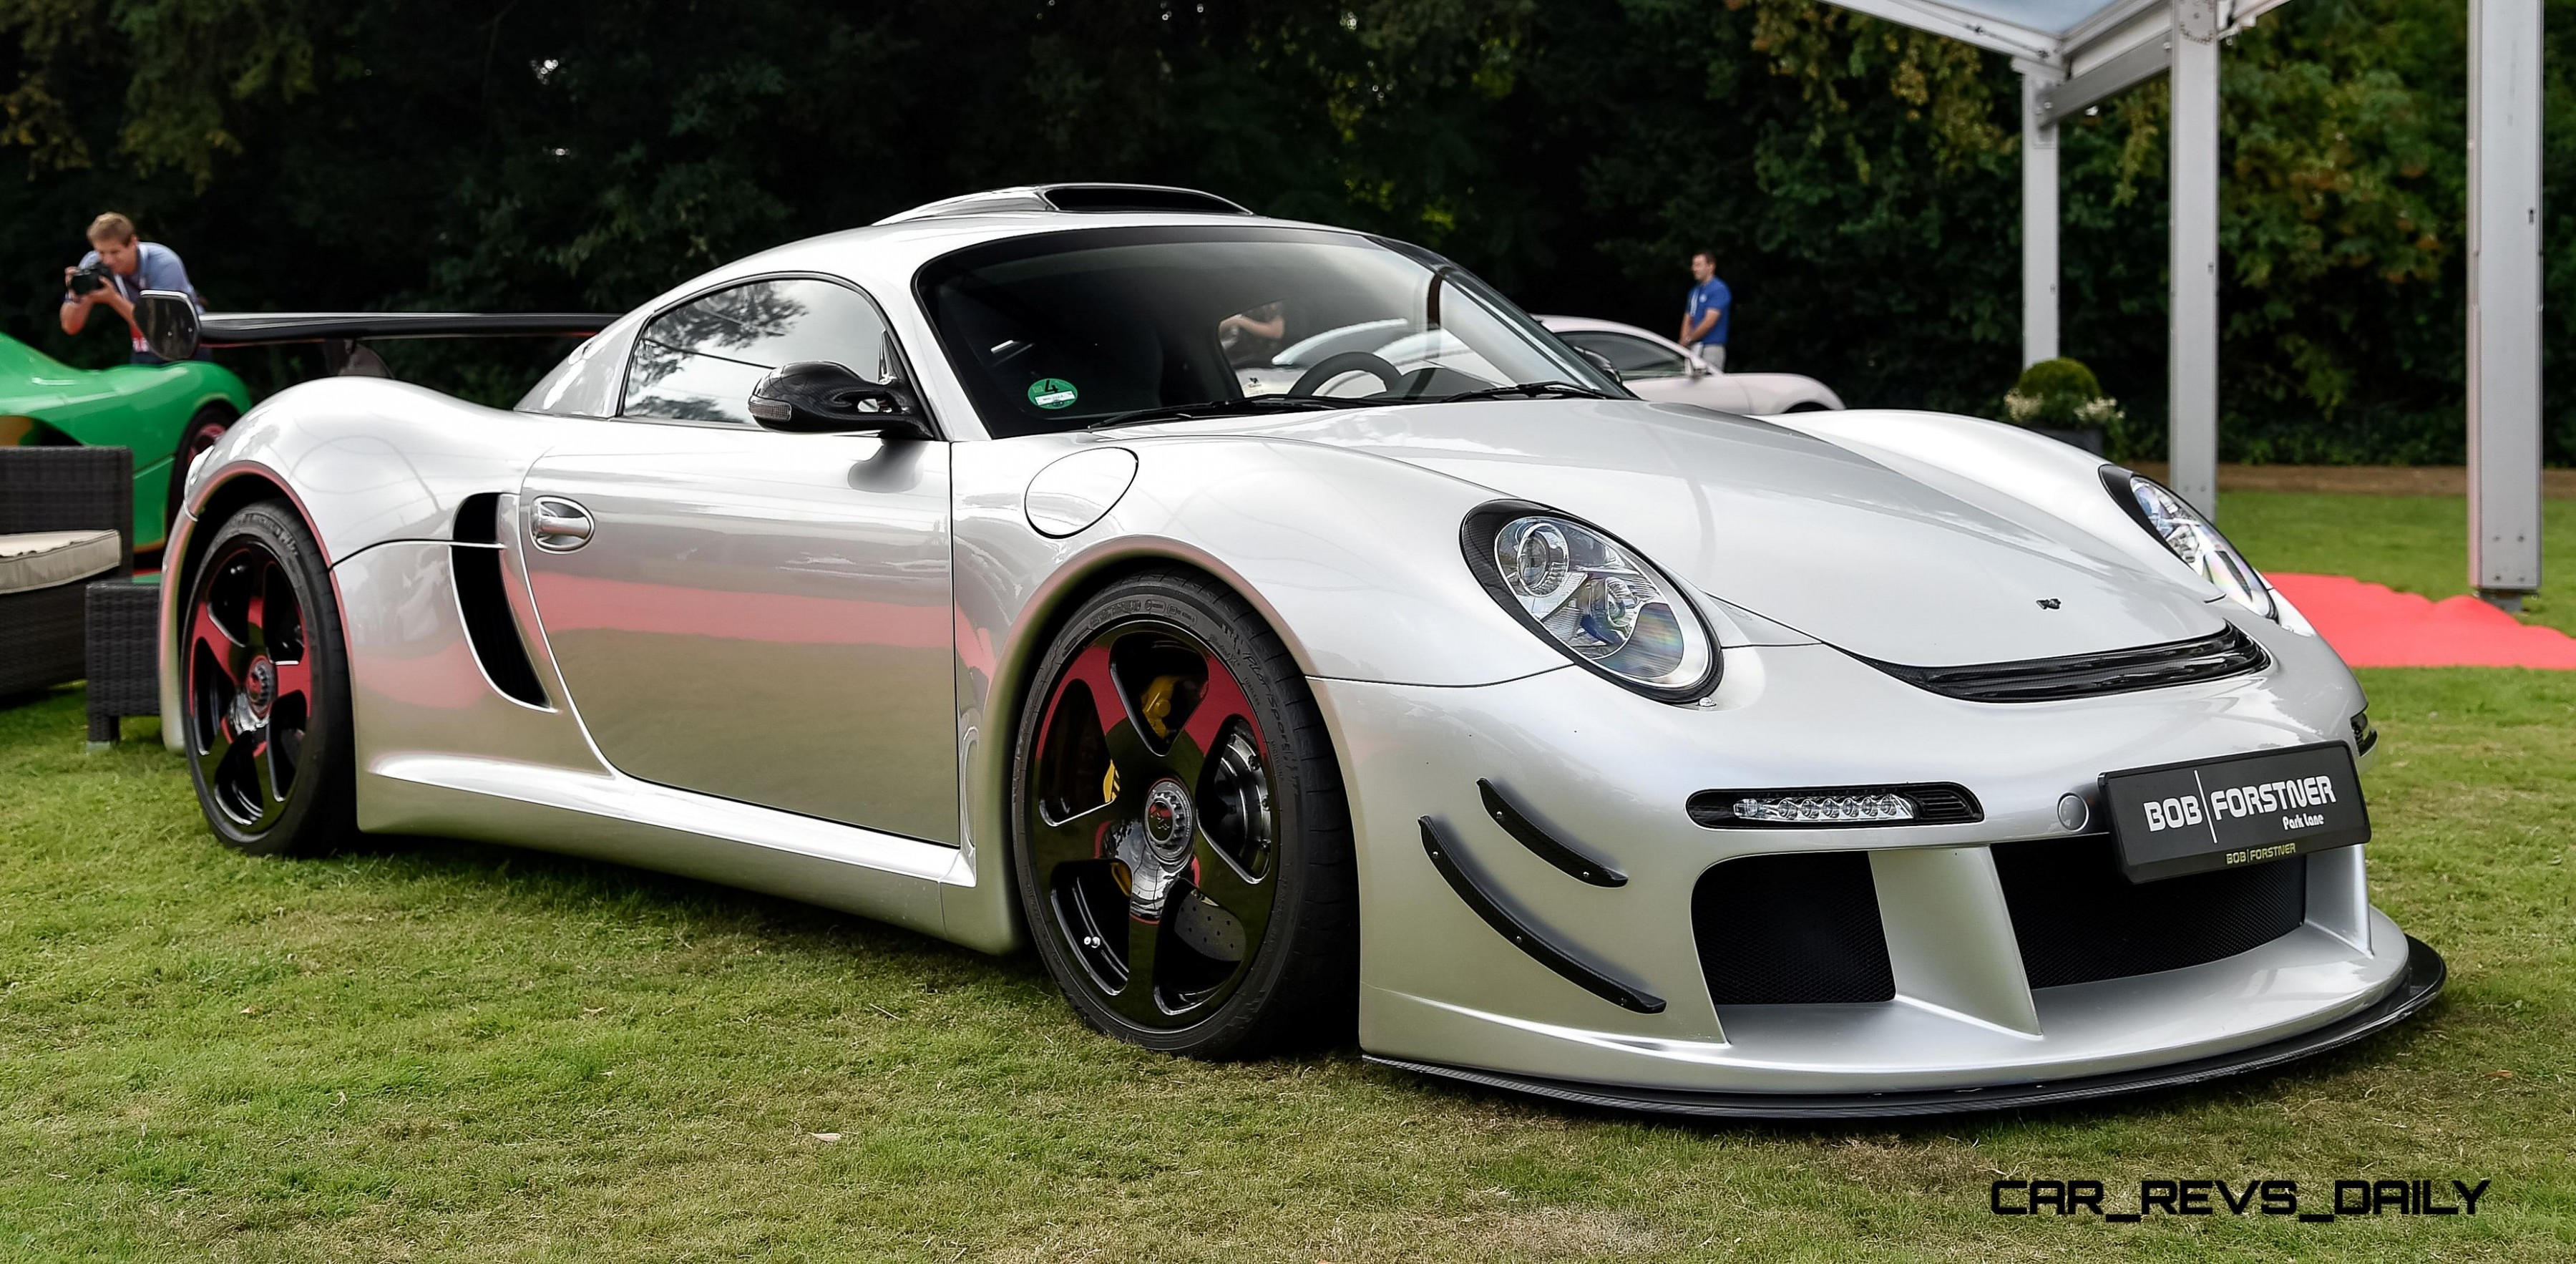 Ruf Ctr3 Clubsport on rear panel of car